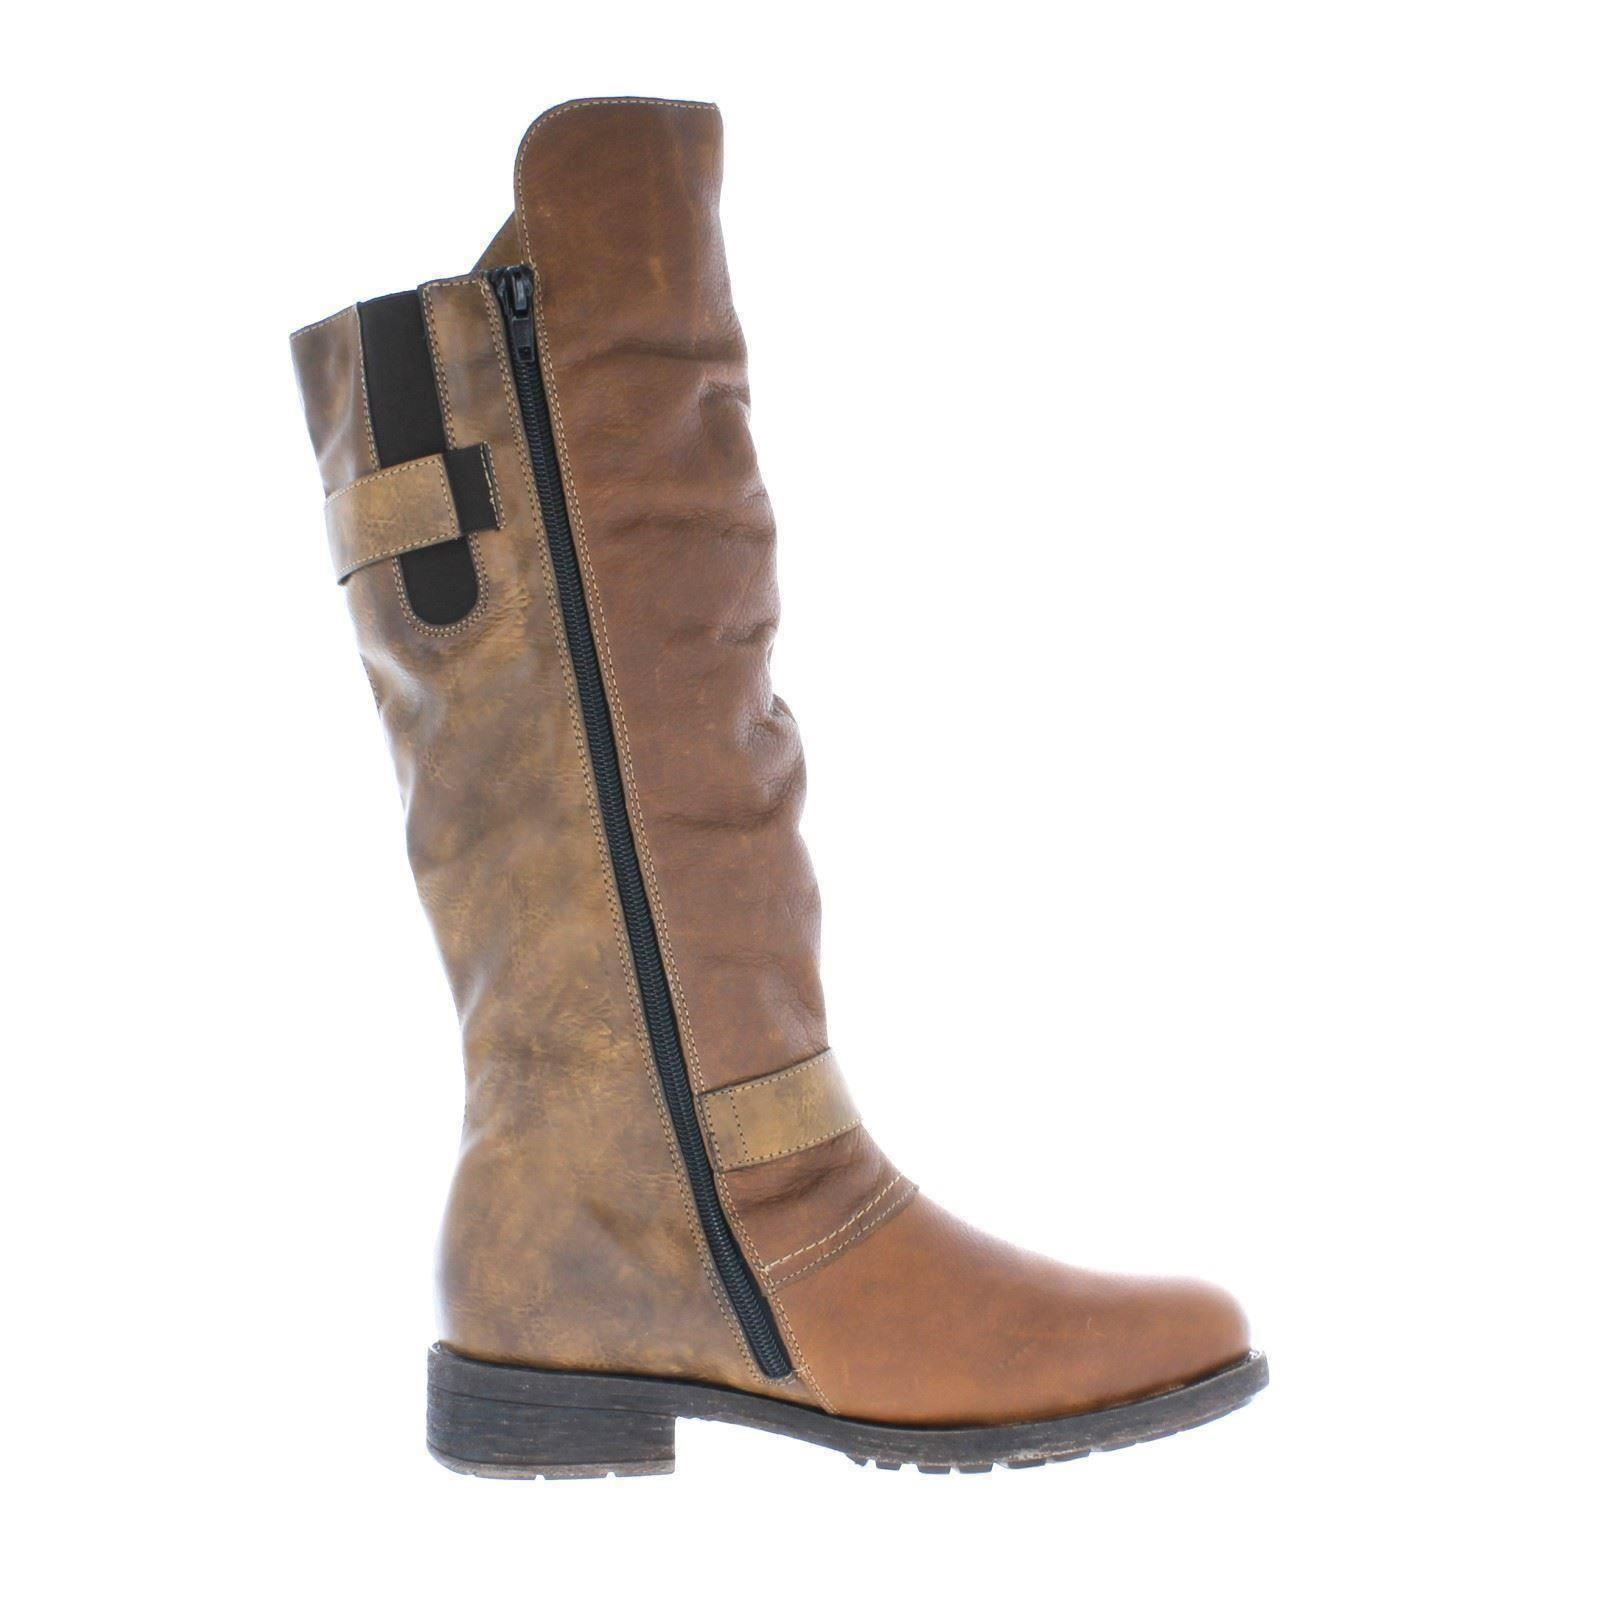 Ladies Combi Boots Brown Warm w tan The Style Lined Remonte D8075 AaAqwrF